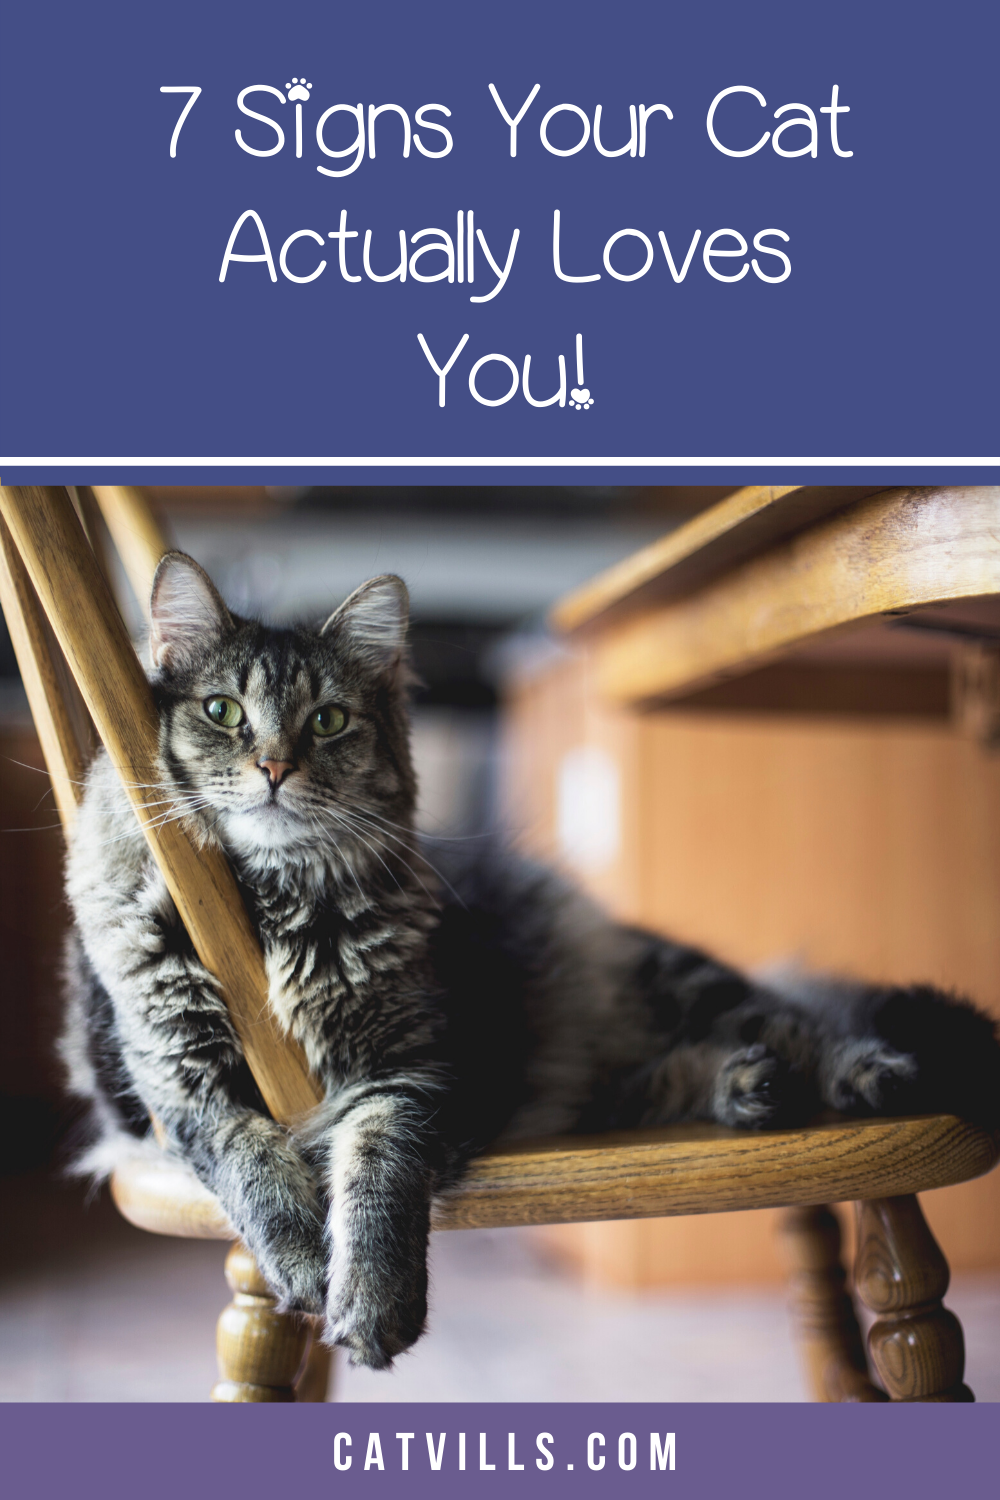 7 Unmistakable Signs Your Cat Loves You Catvills In 2020 Cat Love Cats Cute Cats And Kittens